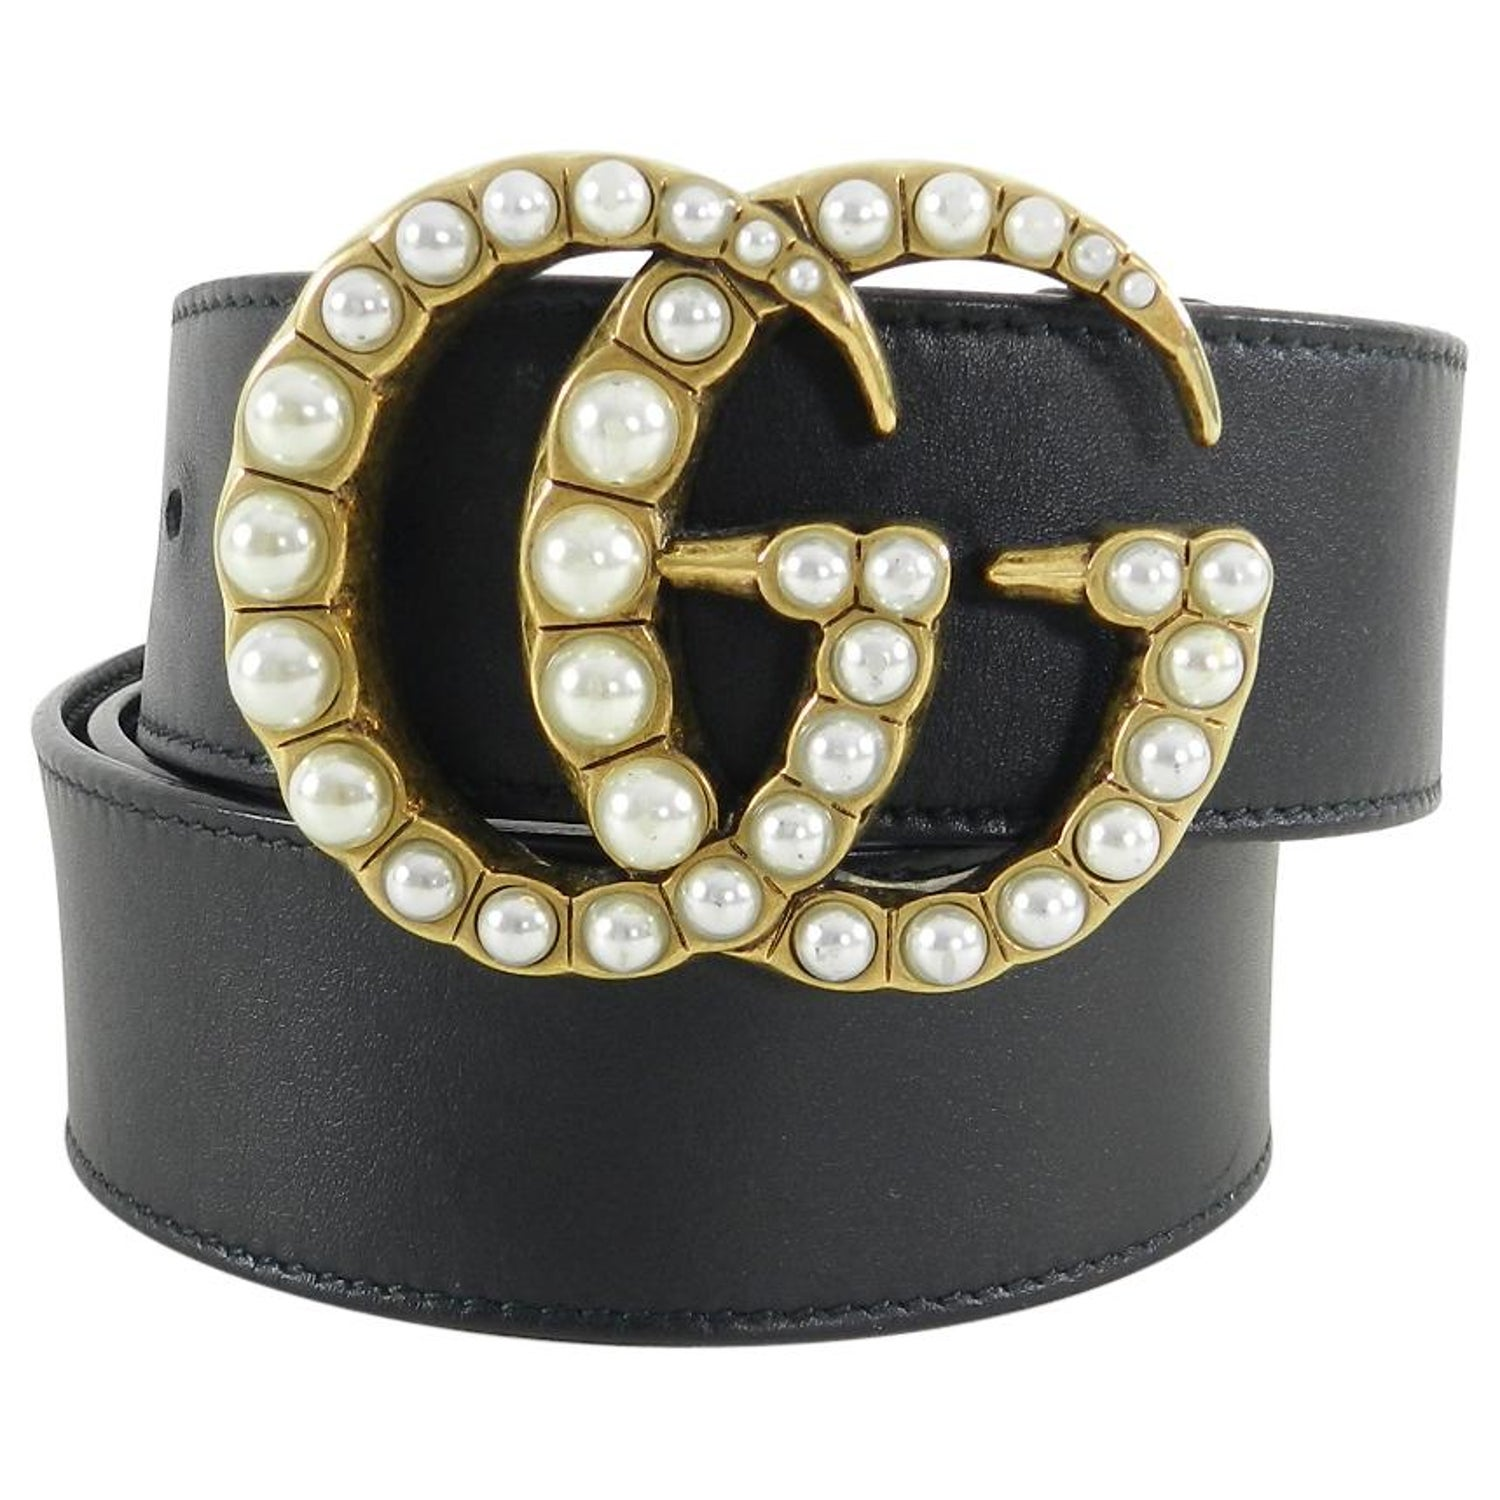 ef9d8a31575357 Gucci Marmont Pearl GG Buckle Belt at 1stdibs